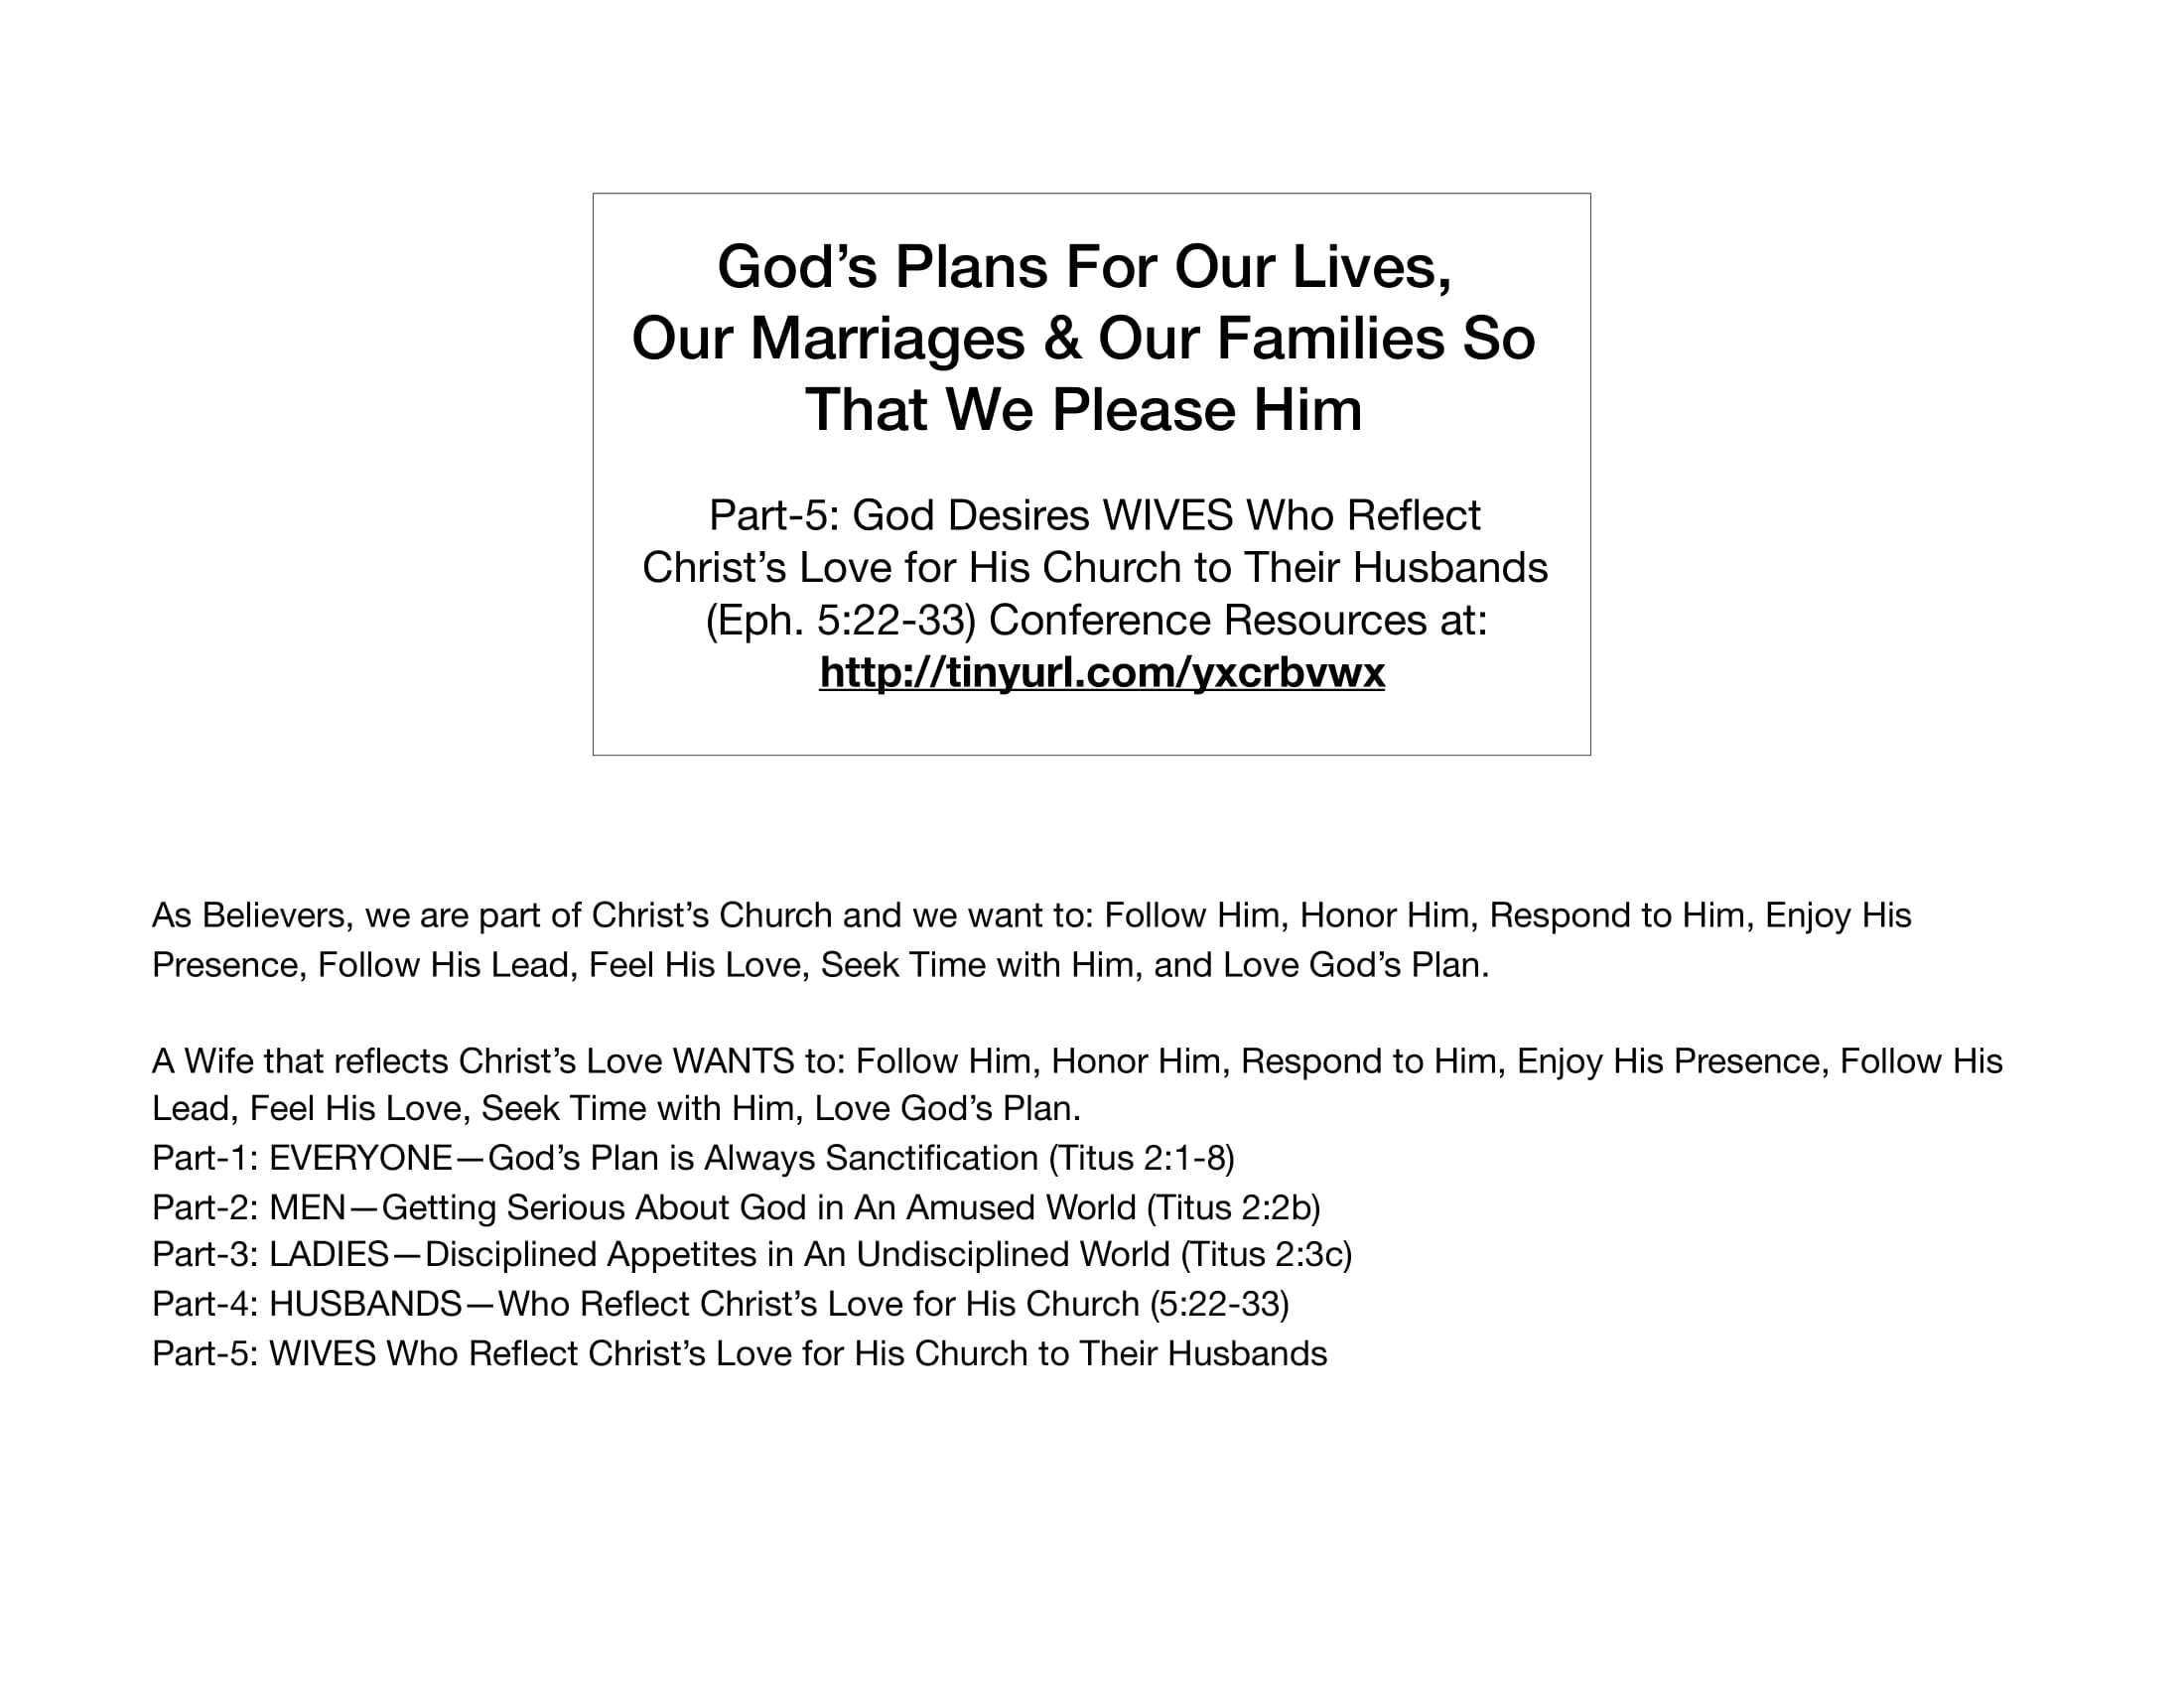 LGI-05 - God Desires Wives Who Reflect Christ's Love To Their Husbands-31